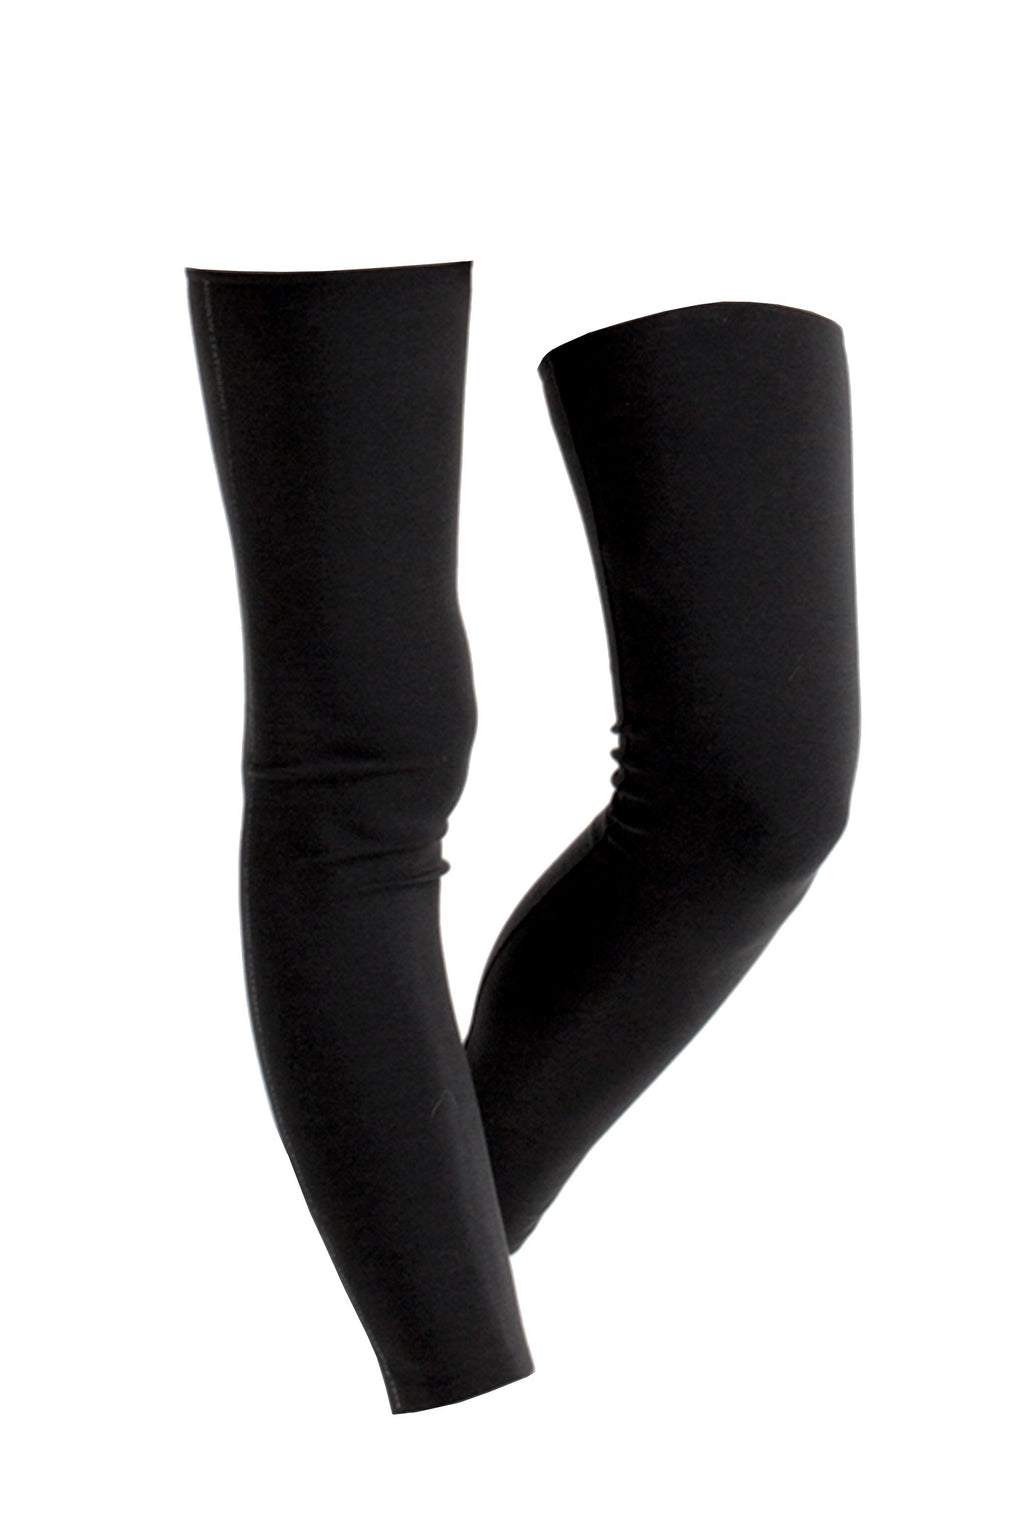 Leg Warmers - Mission Statement Apparel